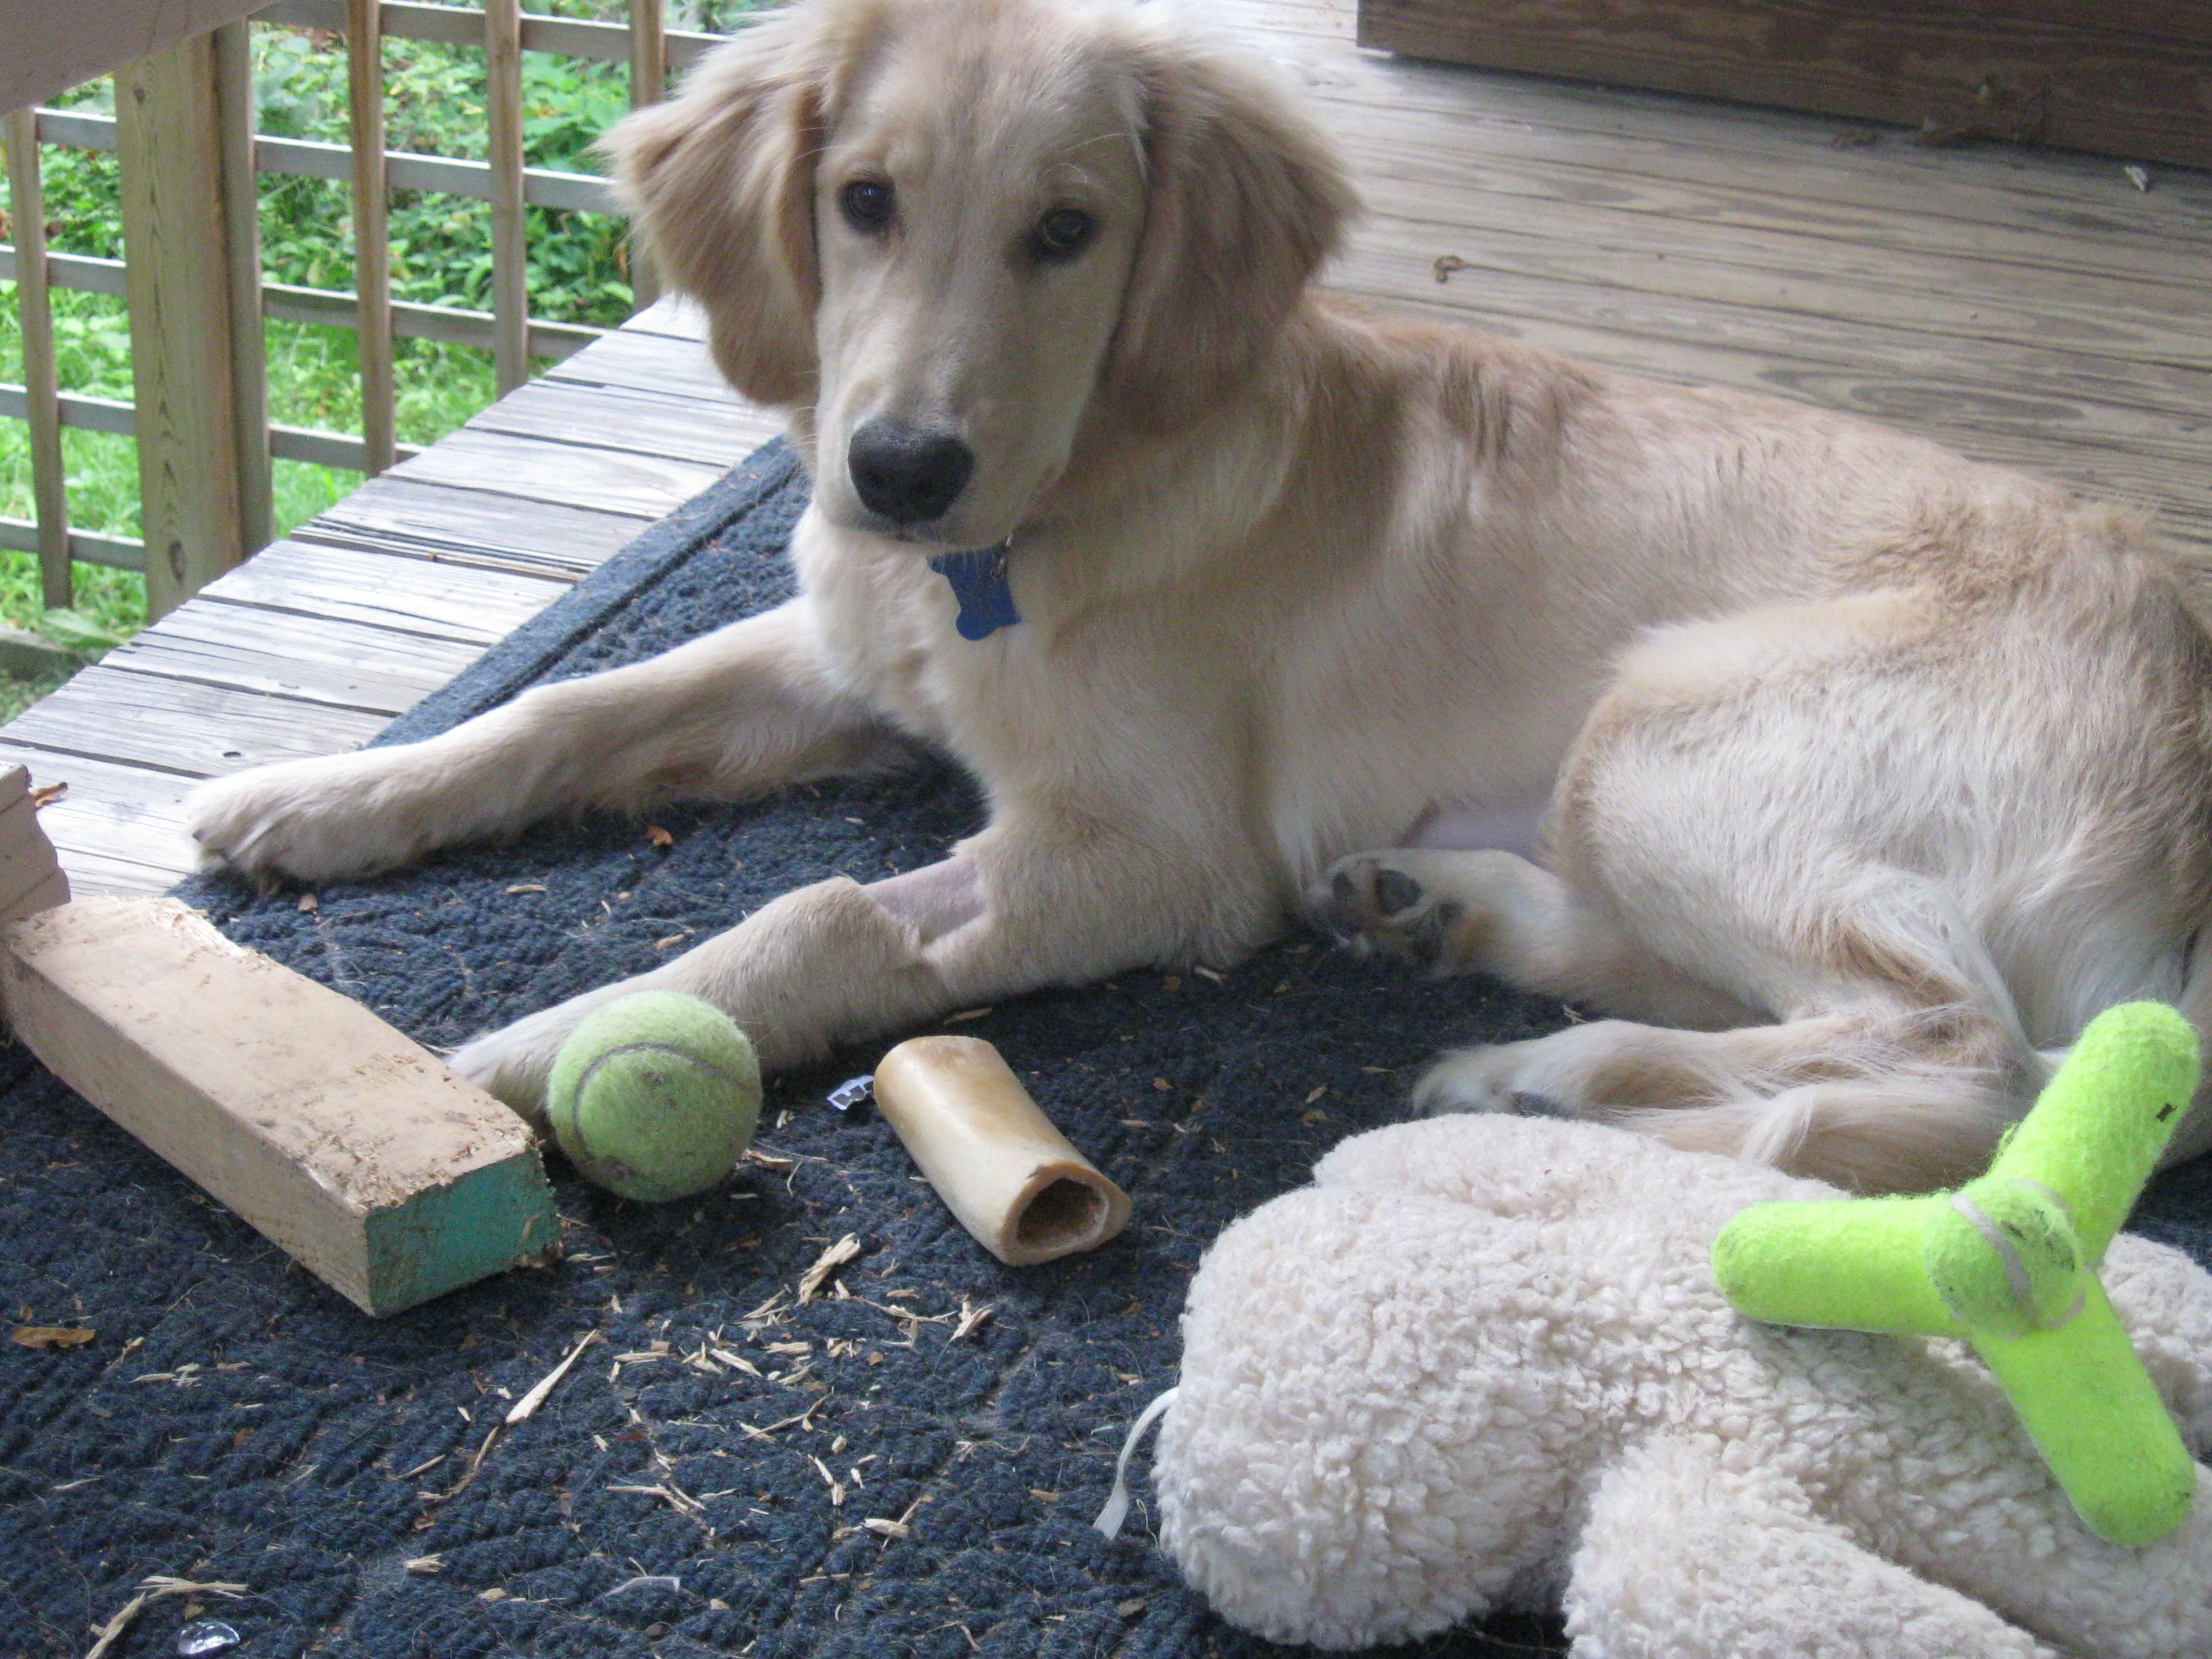 Golden Retriever puppy and toys.